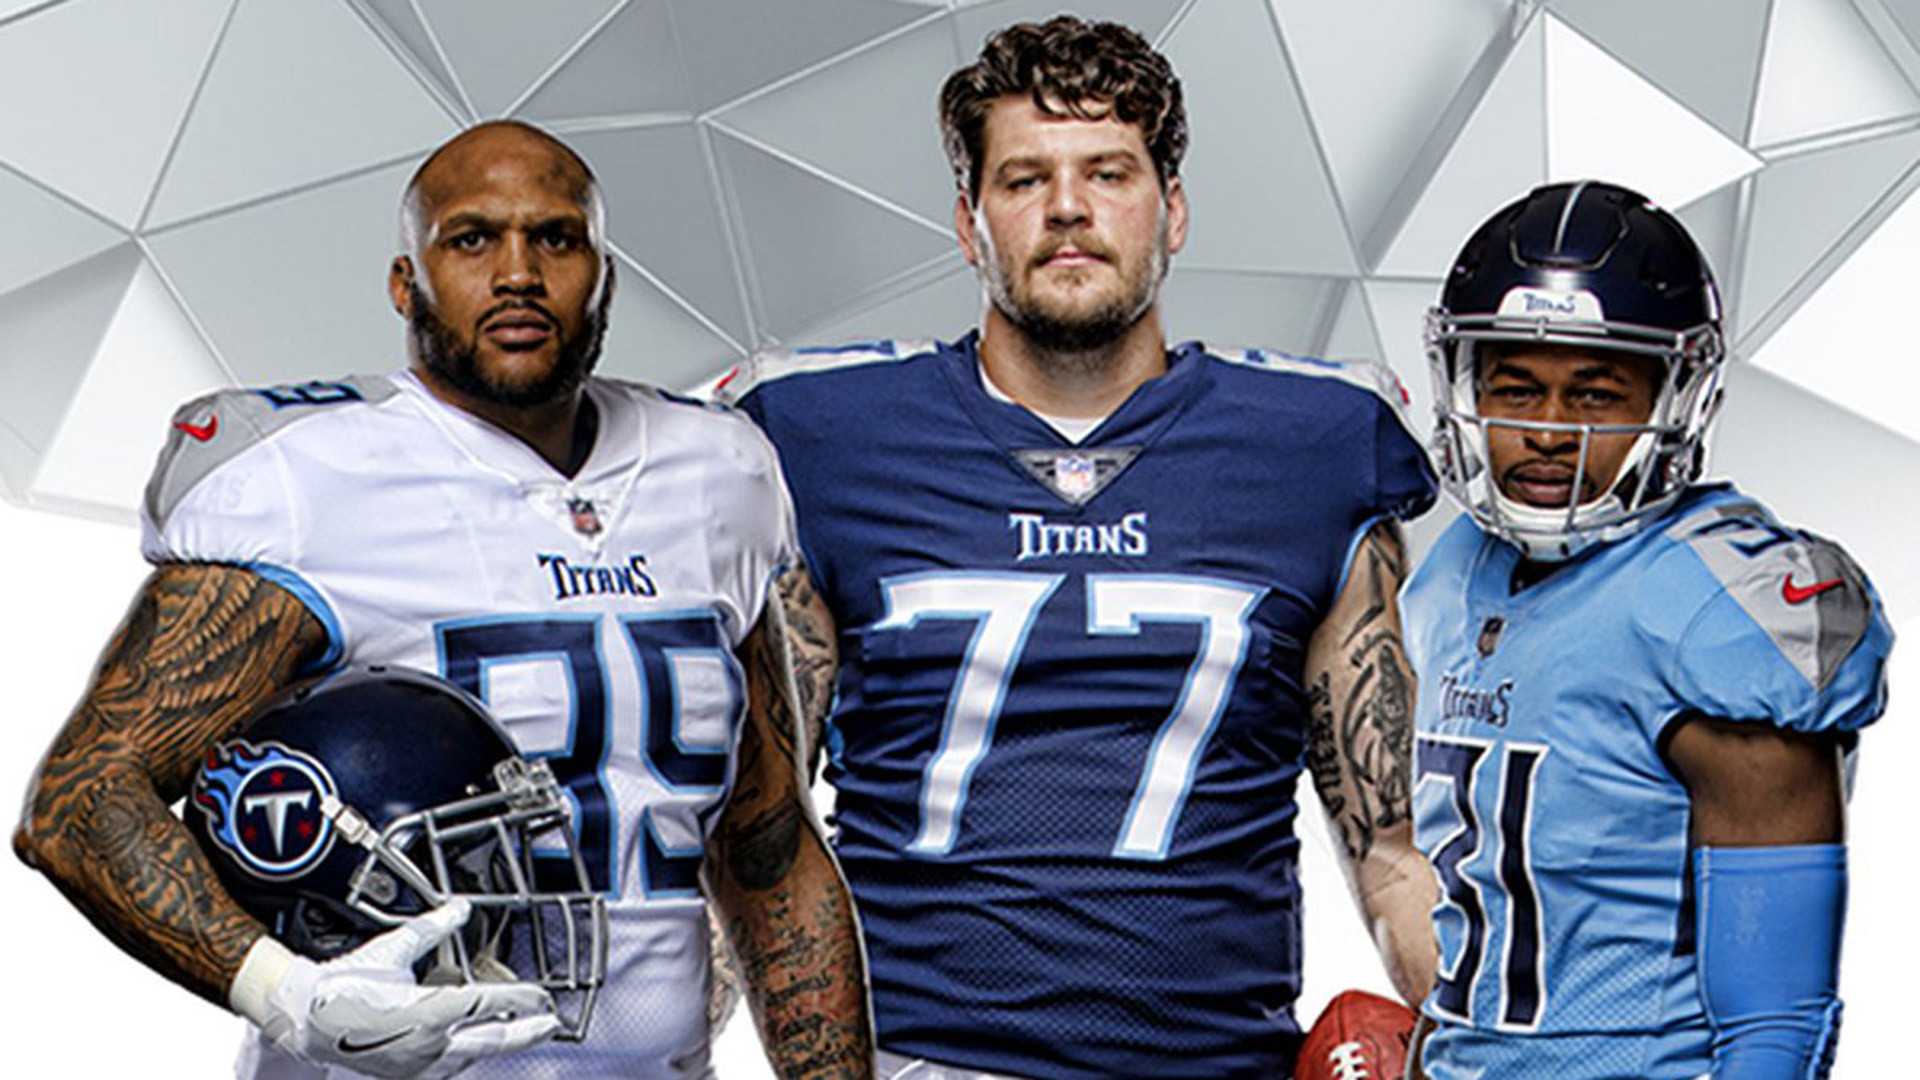 new style a997b d6c95 Tennessee Titans reveal edgy uniforms | NBC Sports